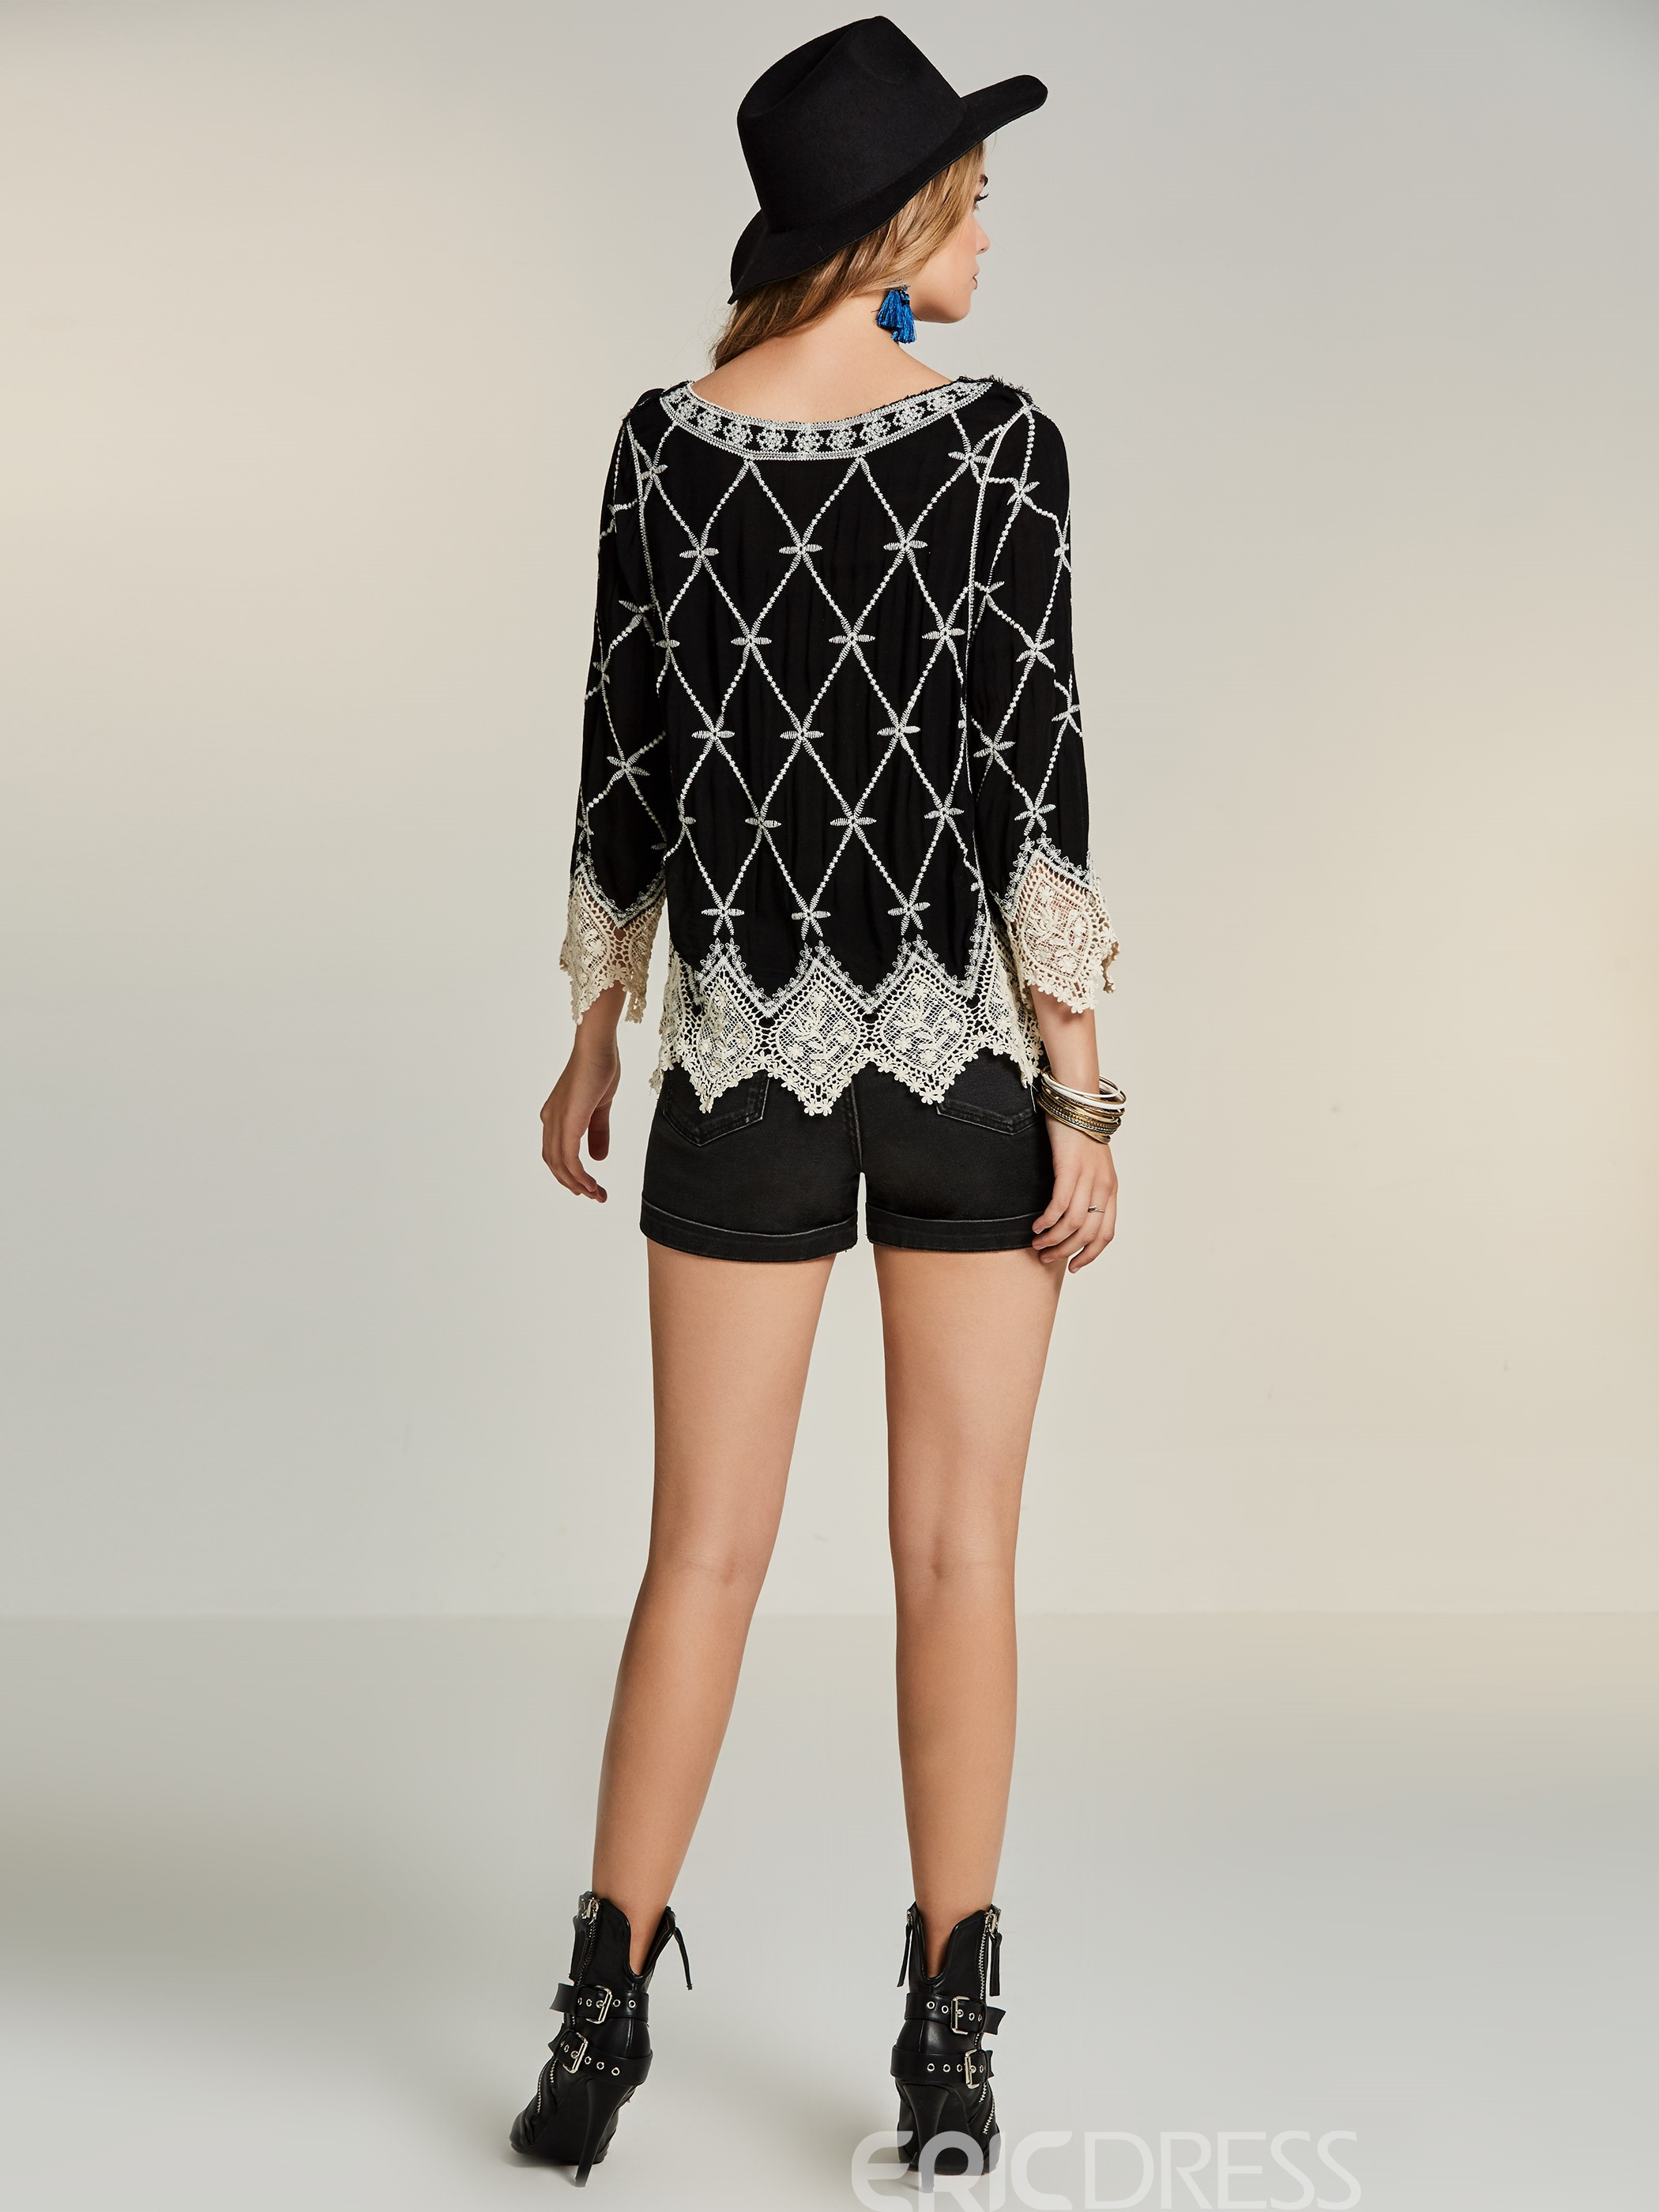 Ericdress Bohoartist Hollow Lace Embroideried Blouse